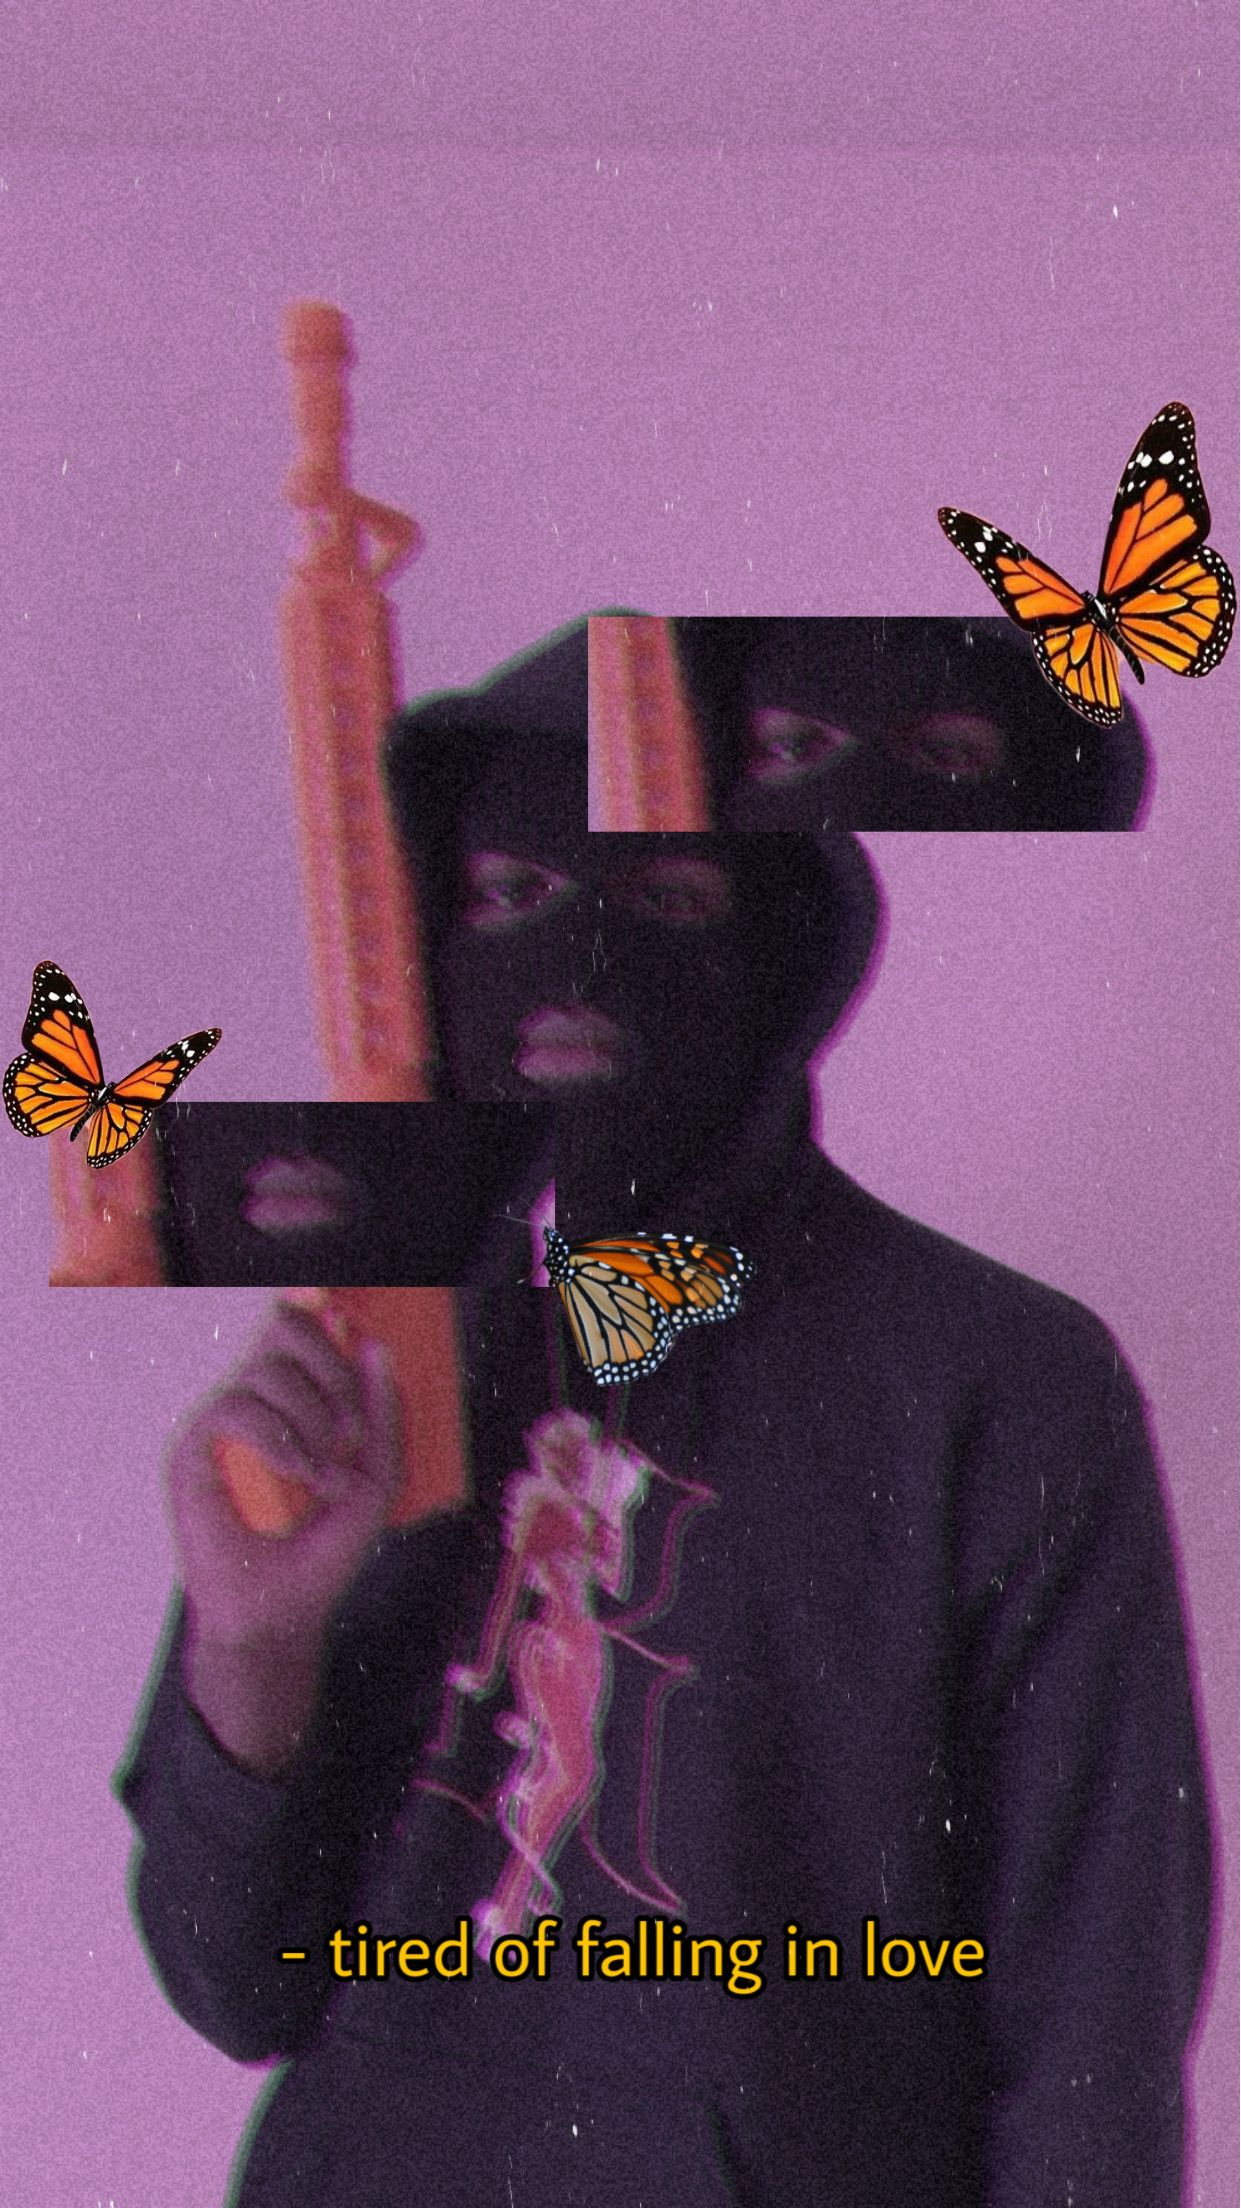 #interesting #people #aesthetic #baddieaesthetic #baddie #wallpaper #wallpapers #playboiaesthetic #gangsta #ganstaaesthetic #gangsteraesthetic #gangster #butterfly #pink #pinkaesthetic #purple #purpleaesthetic #skimask #skimaskaesthetic  #freetoedit